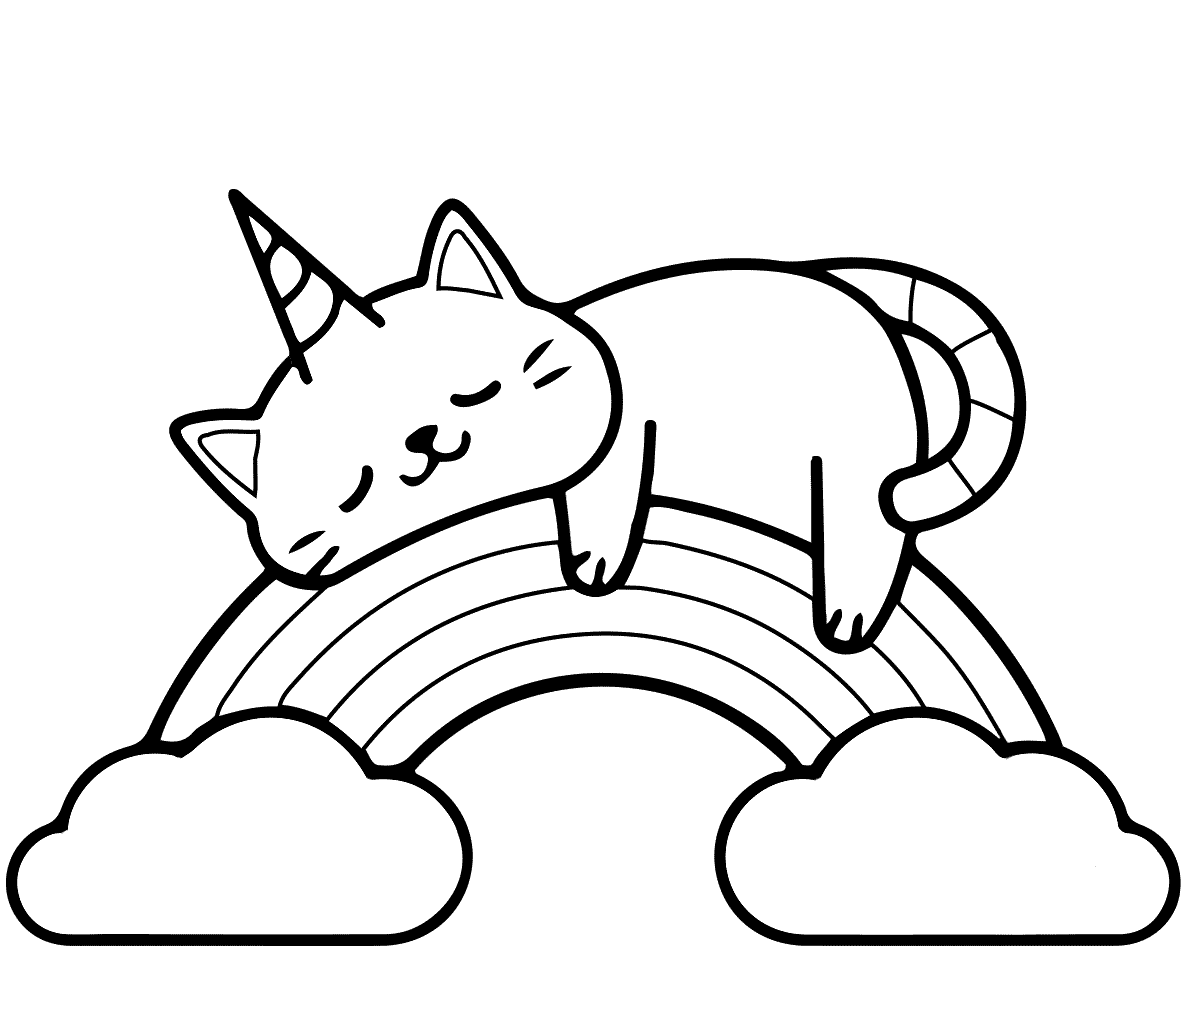 Unicorn cat lies on the rainbow Coloring Page